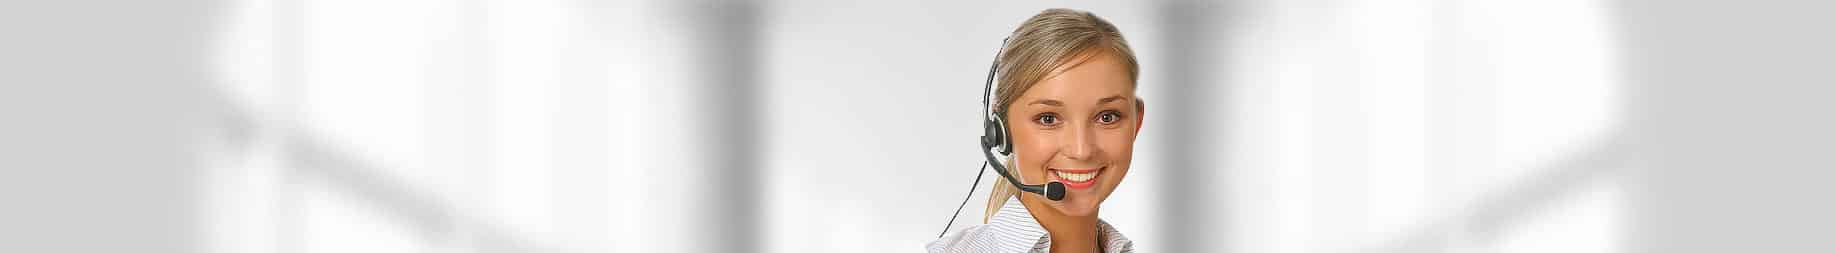 Agencies | E-Commerce Order Taking | E-Commerce Call Centers | Call Center Agents | Overflow Call Centers | Overflow Call Handling | Call Center Provider | Great Customer Experience | Catalog Call Centers | Call Center Culture | Outsourcing Cost | Low Priced Call Center | Call Center Providers | Inbound Call Center | Domestic | International Call Centers | Call Center Culture | Global Call Center Consulting | Contact Center Outsourcing | Catalog Order Taking | Call Center Costs | Outsource | Outsourcing Concerns | Order Taking Services | Call Center Services | Inbound Ordertaking